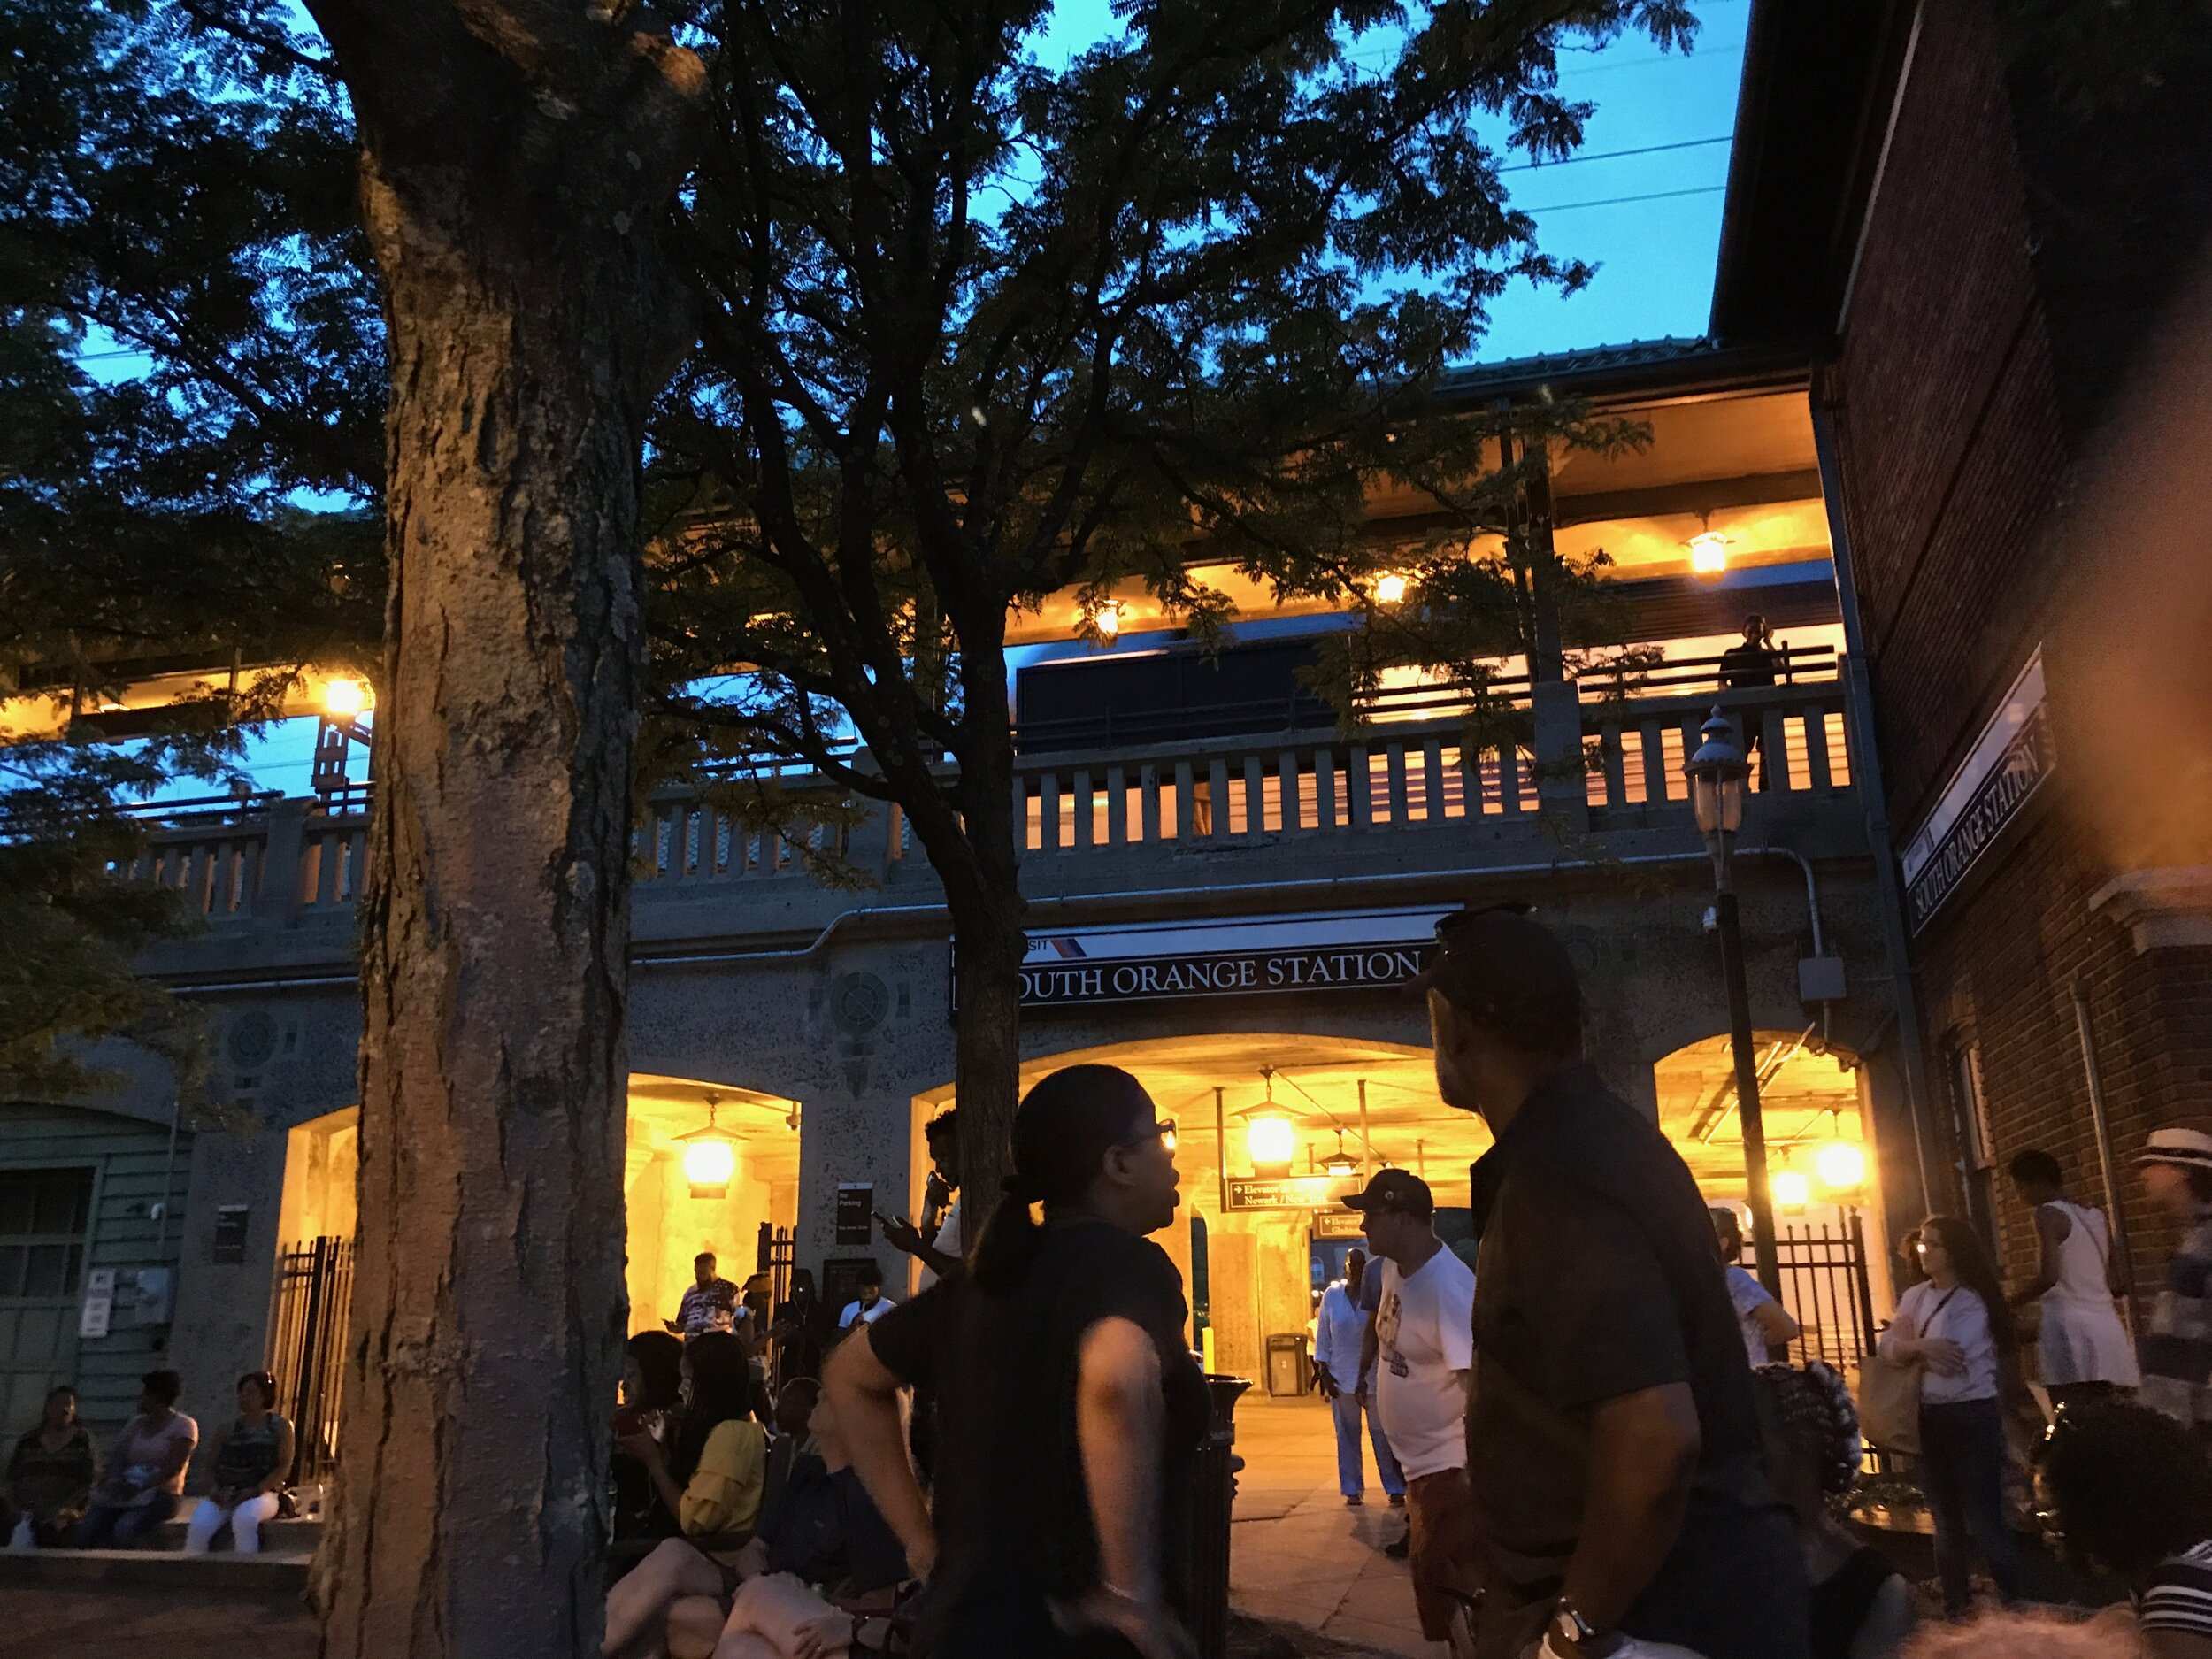 Historic Village of South Orange train station at dusk. We'll arrive there around 12:30 PM and take the train to Midtown in Manhattan.